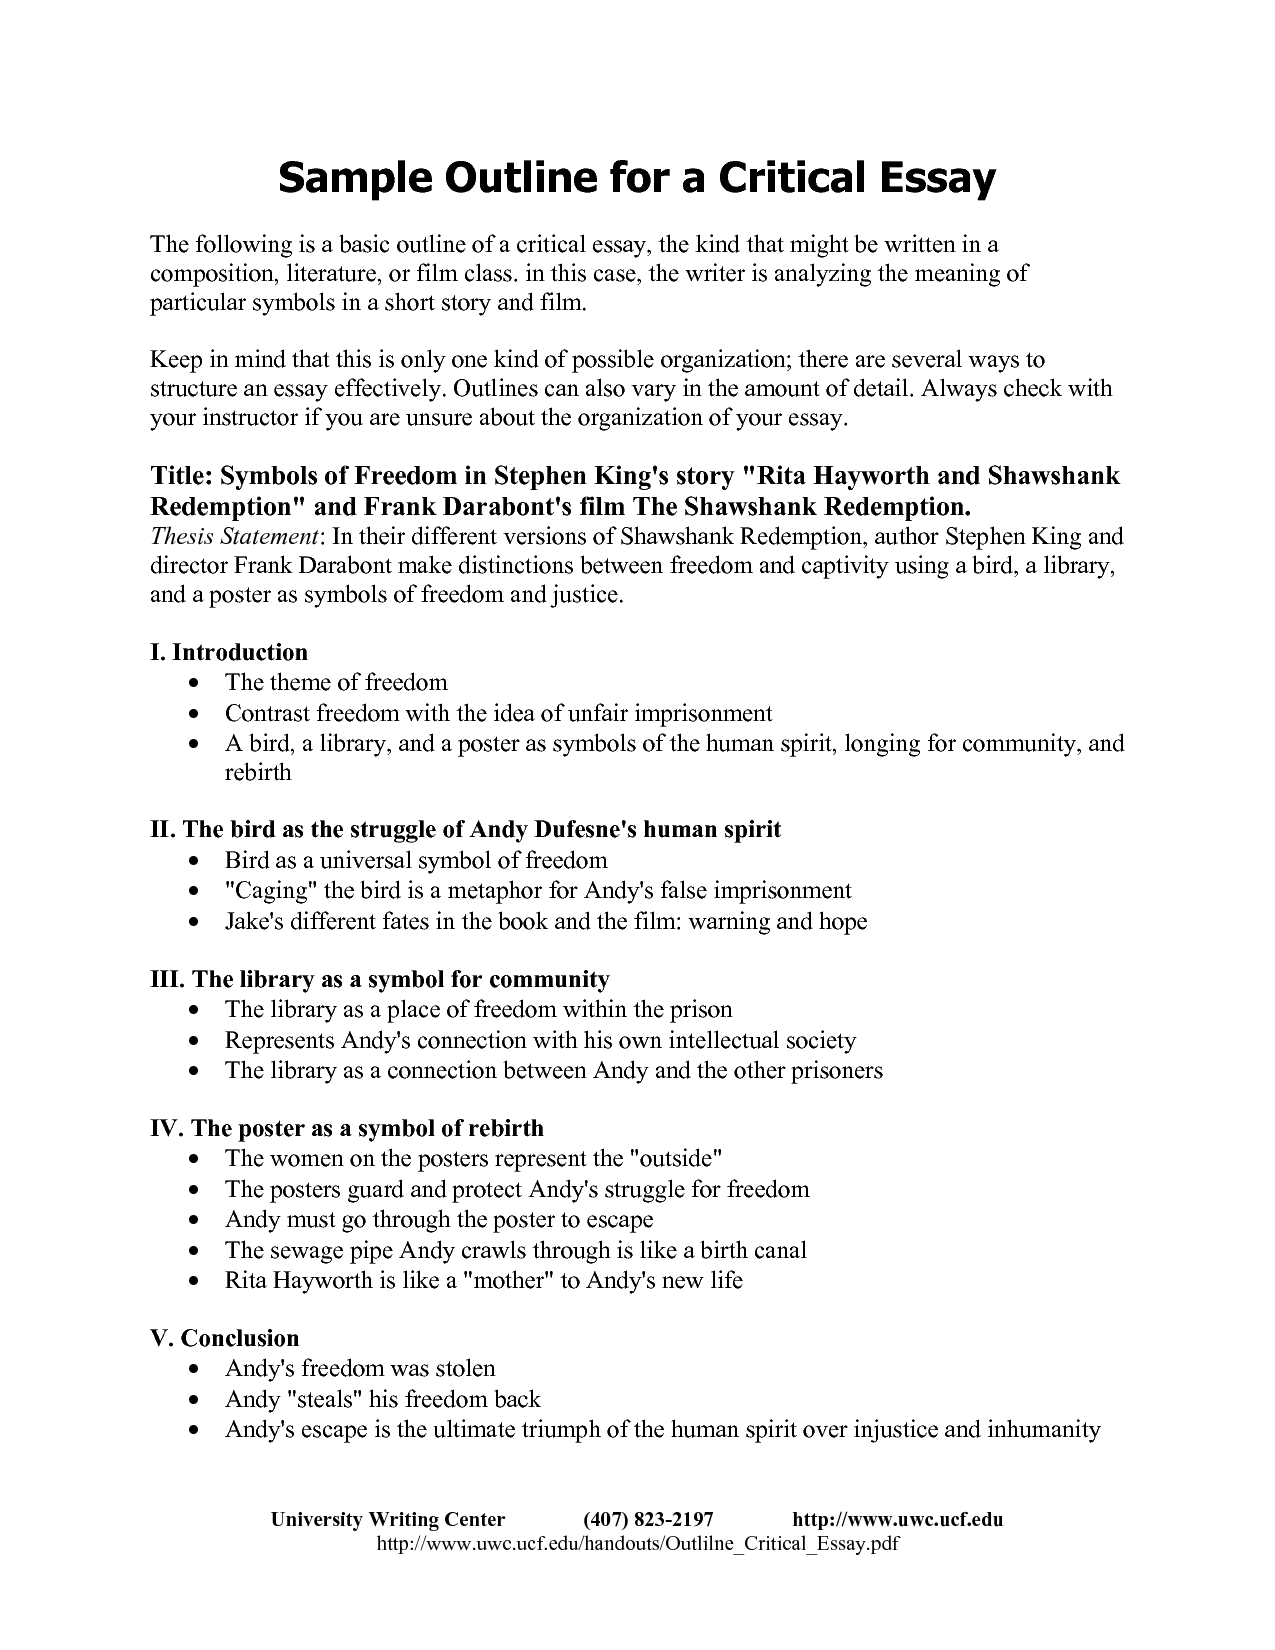 001 Critical Essay Outline Format 130831 Example How To Begin Amazing A Review Structure Response Full